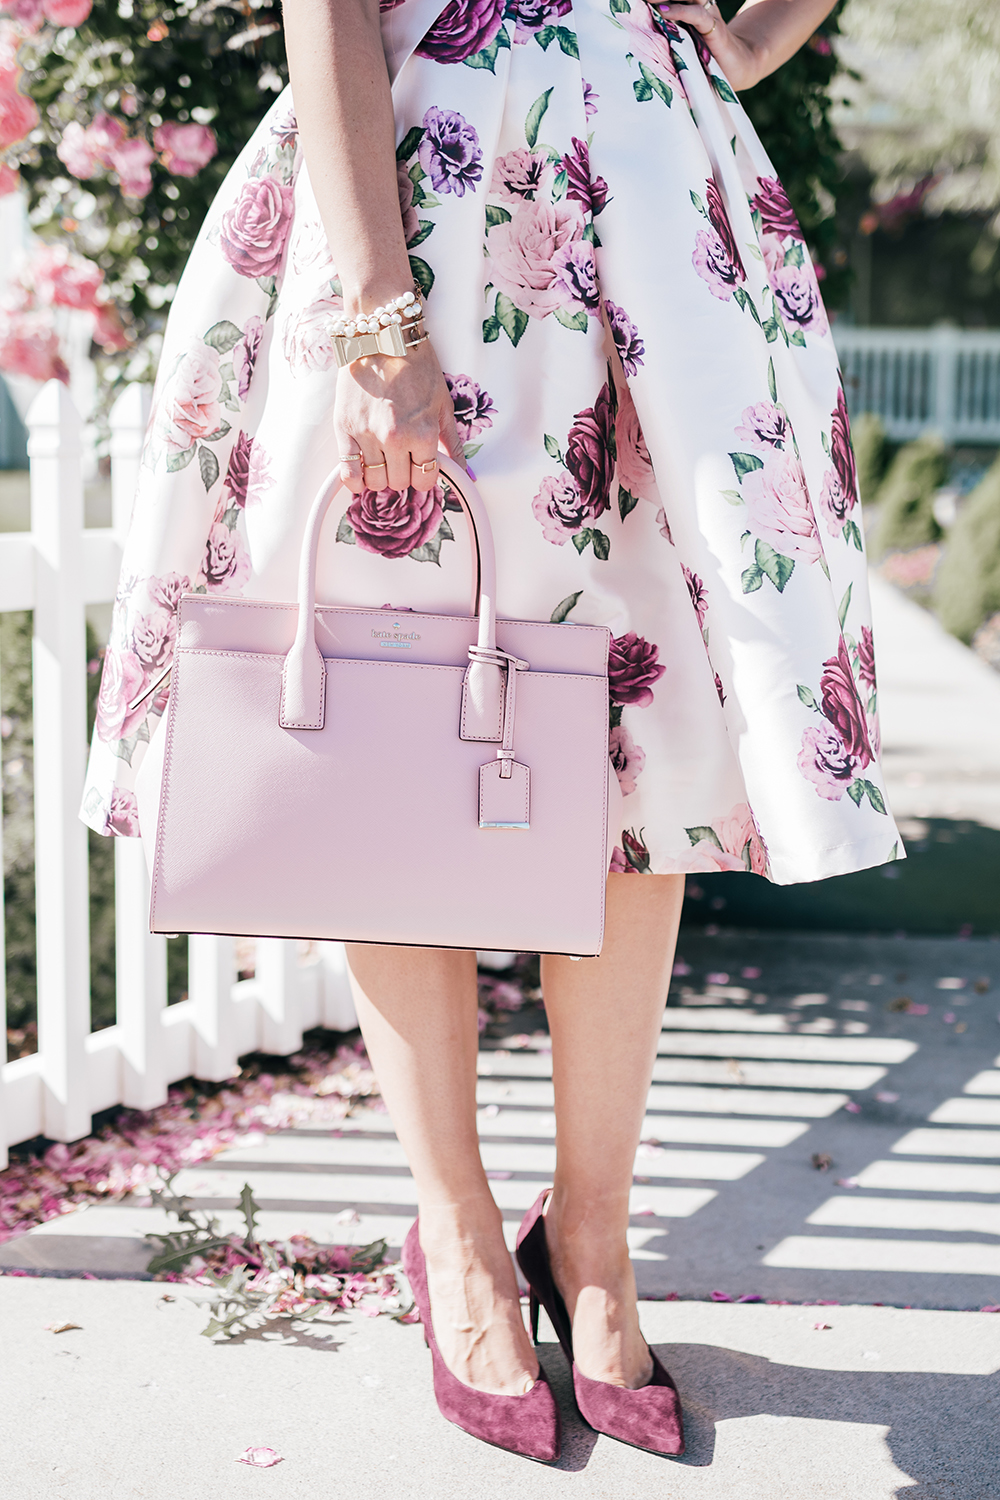 Solid Color Purse with Solid color heels complement the Floral Patterns!